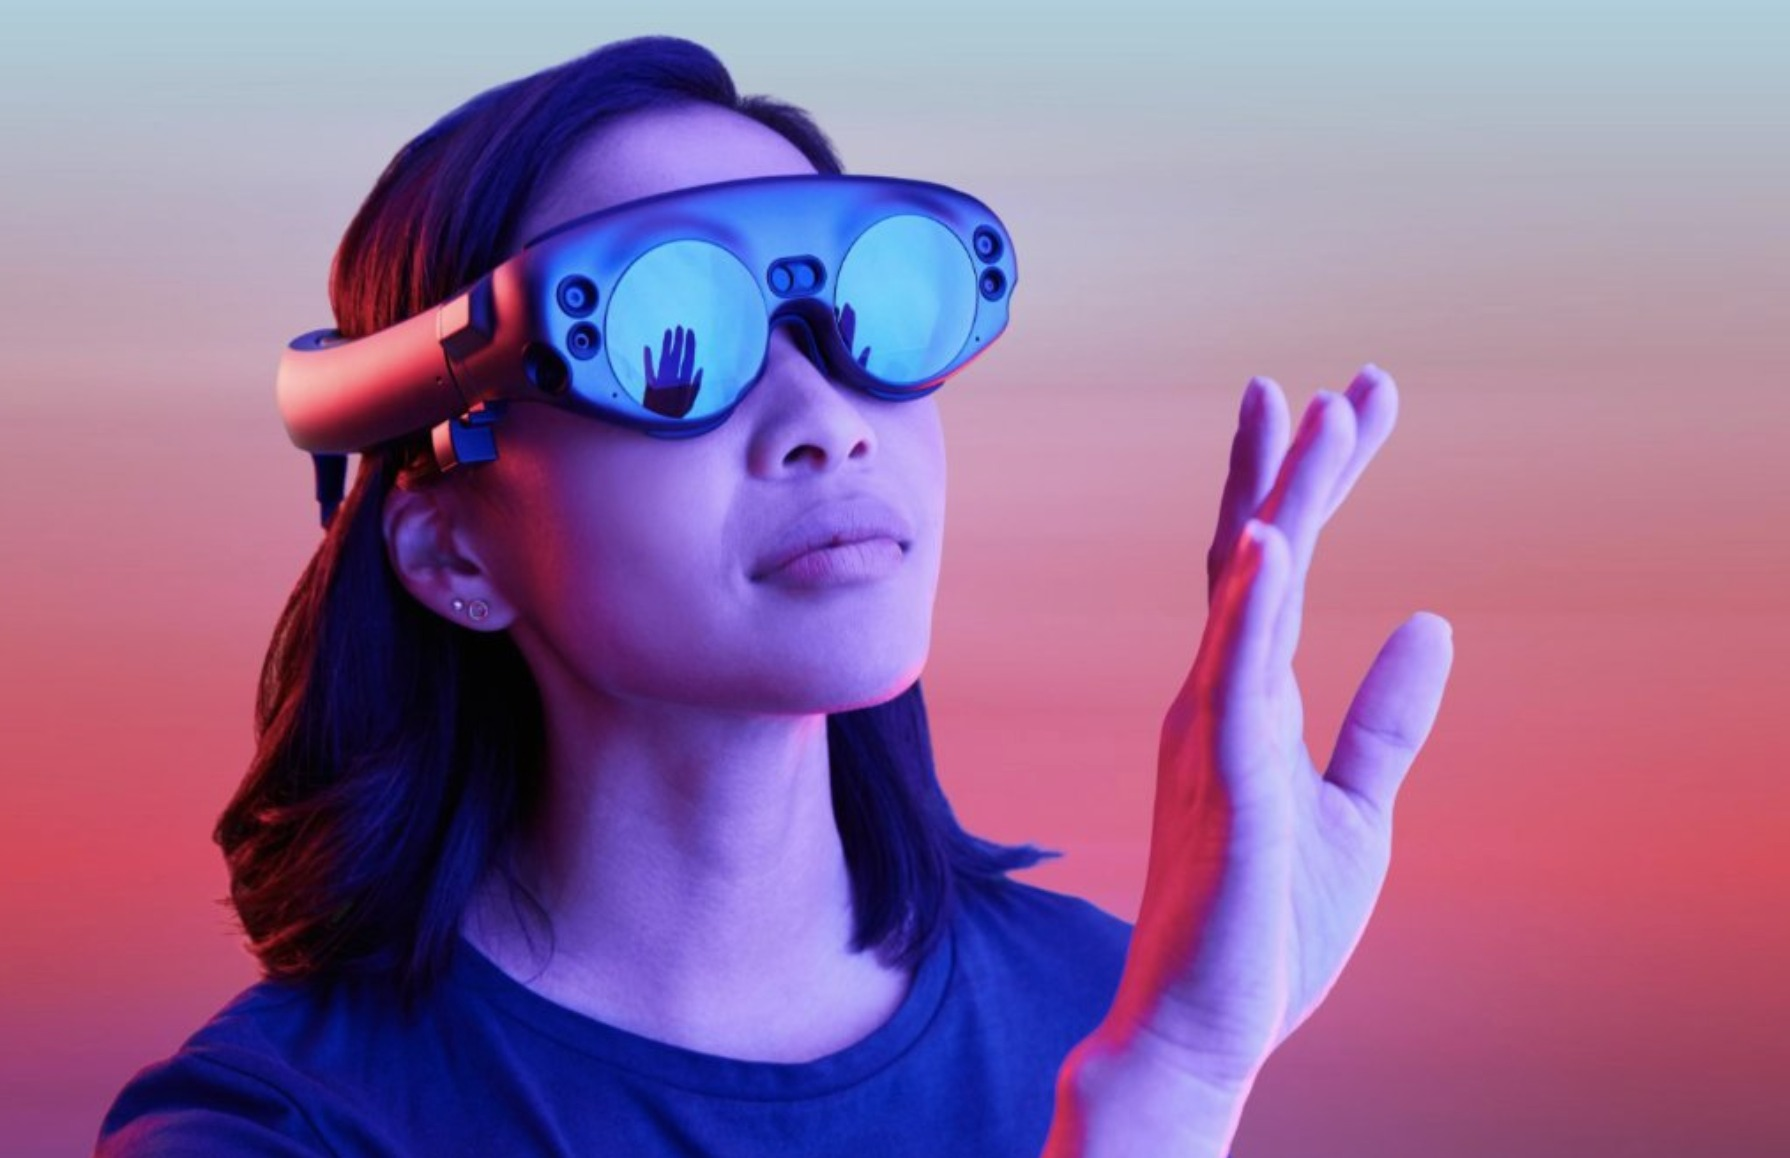 Magic Leap is coming up with the industry's smallest and lightest AR headset